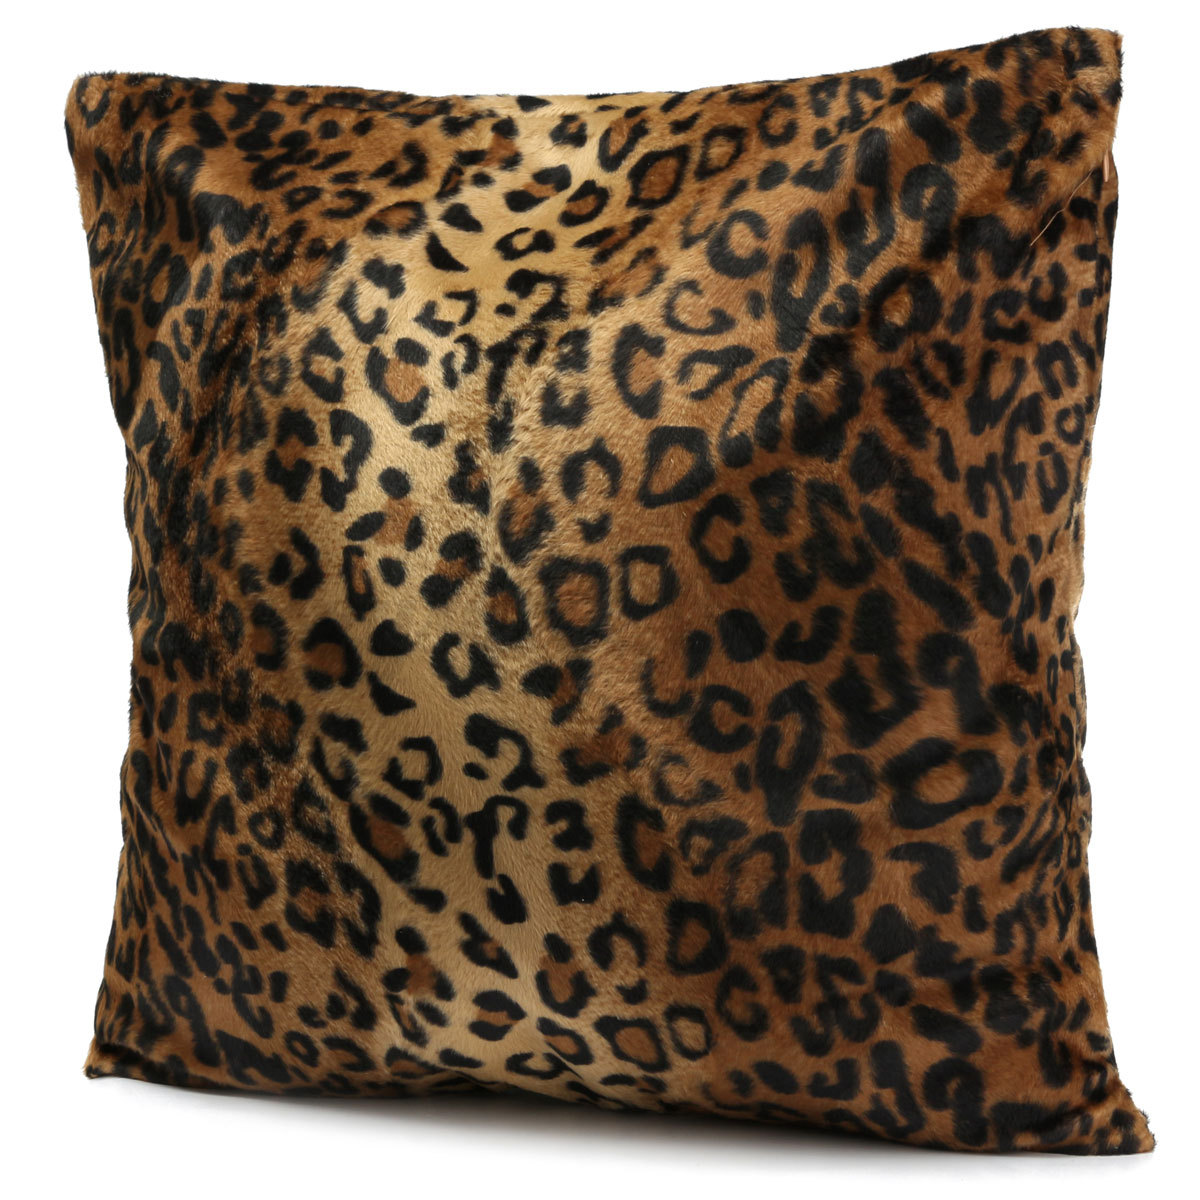 Animal Print Pillows Couch : Animal Zebra Leopard Print Pillow Case Sofa Waist Throw Cushion Cover Home Decor